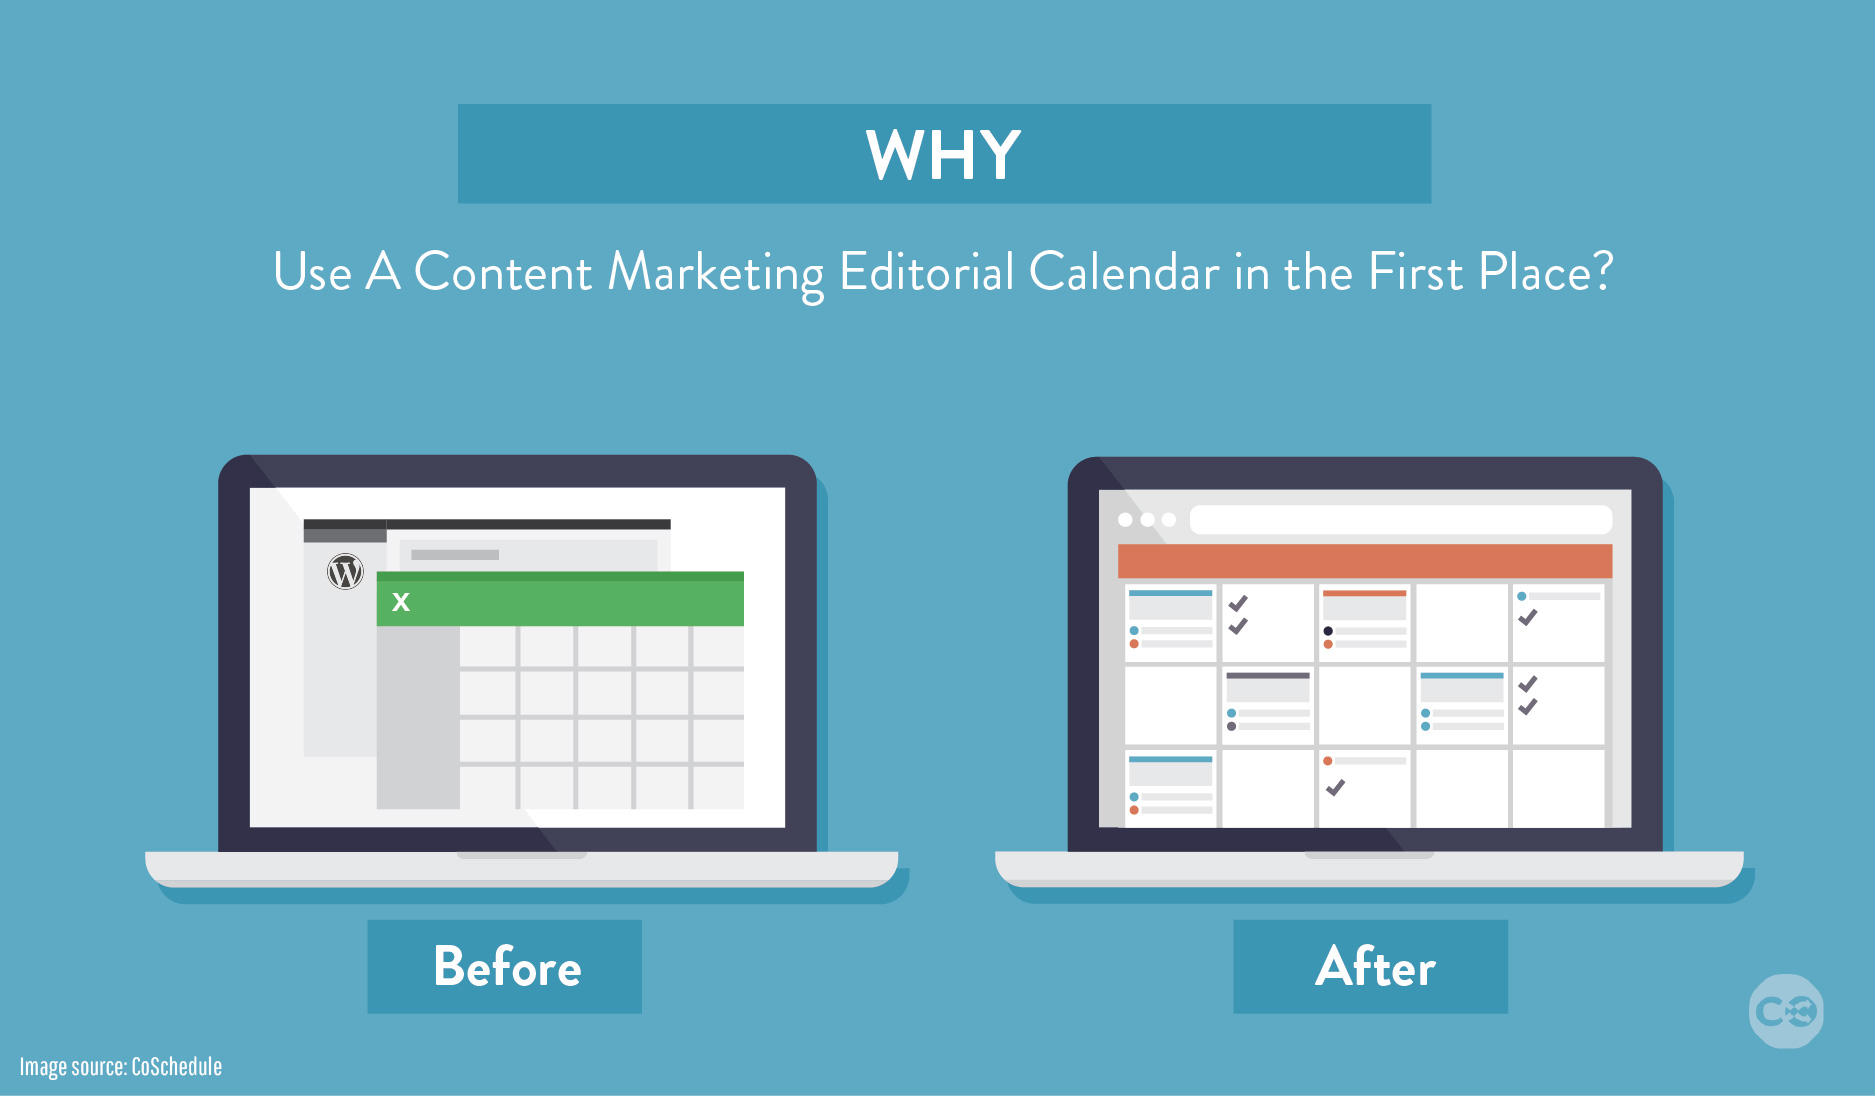 Fare Un Calendario Con Excel.Come Creare Un Calendario Editoriale Per L Autunno Mailup Blog